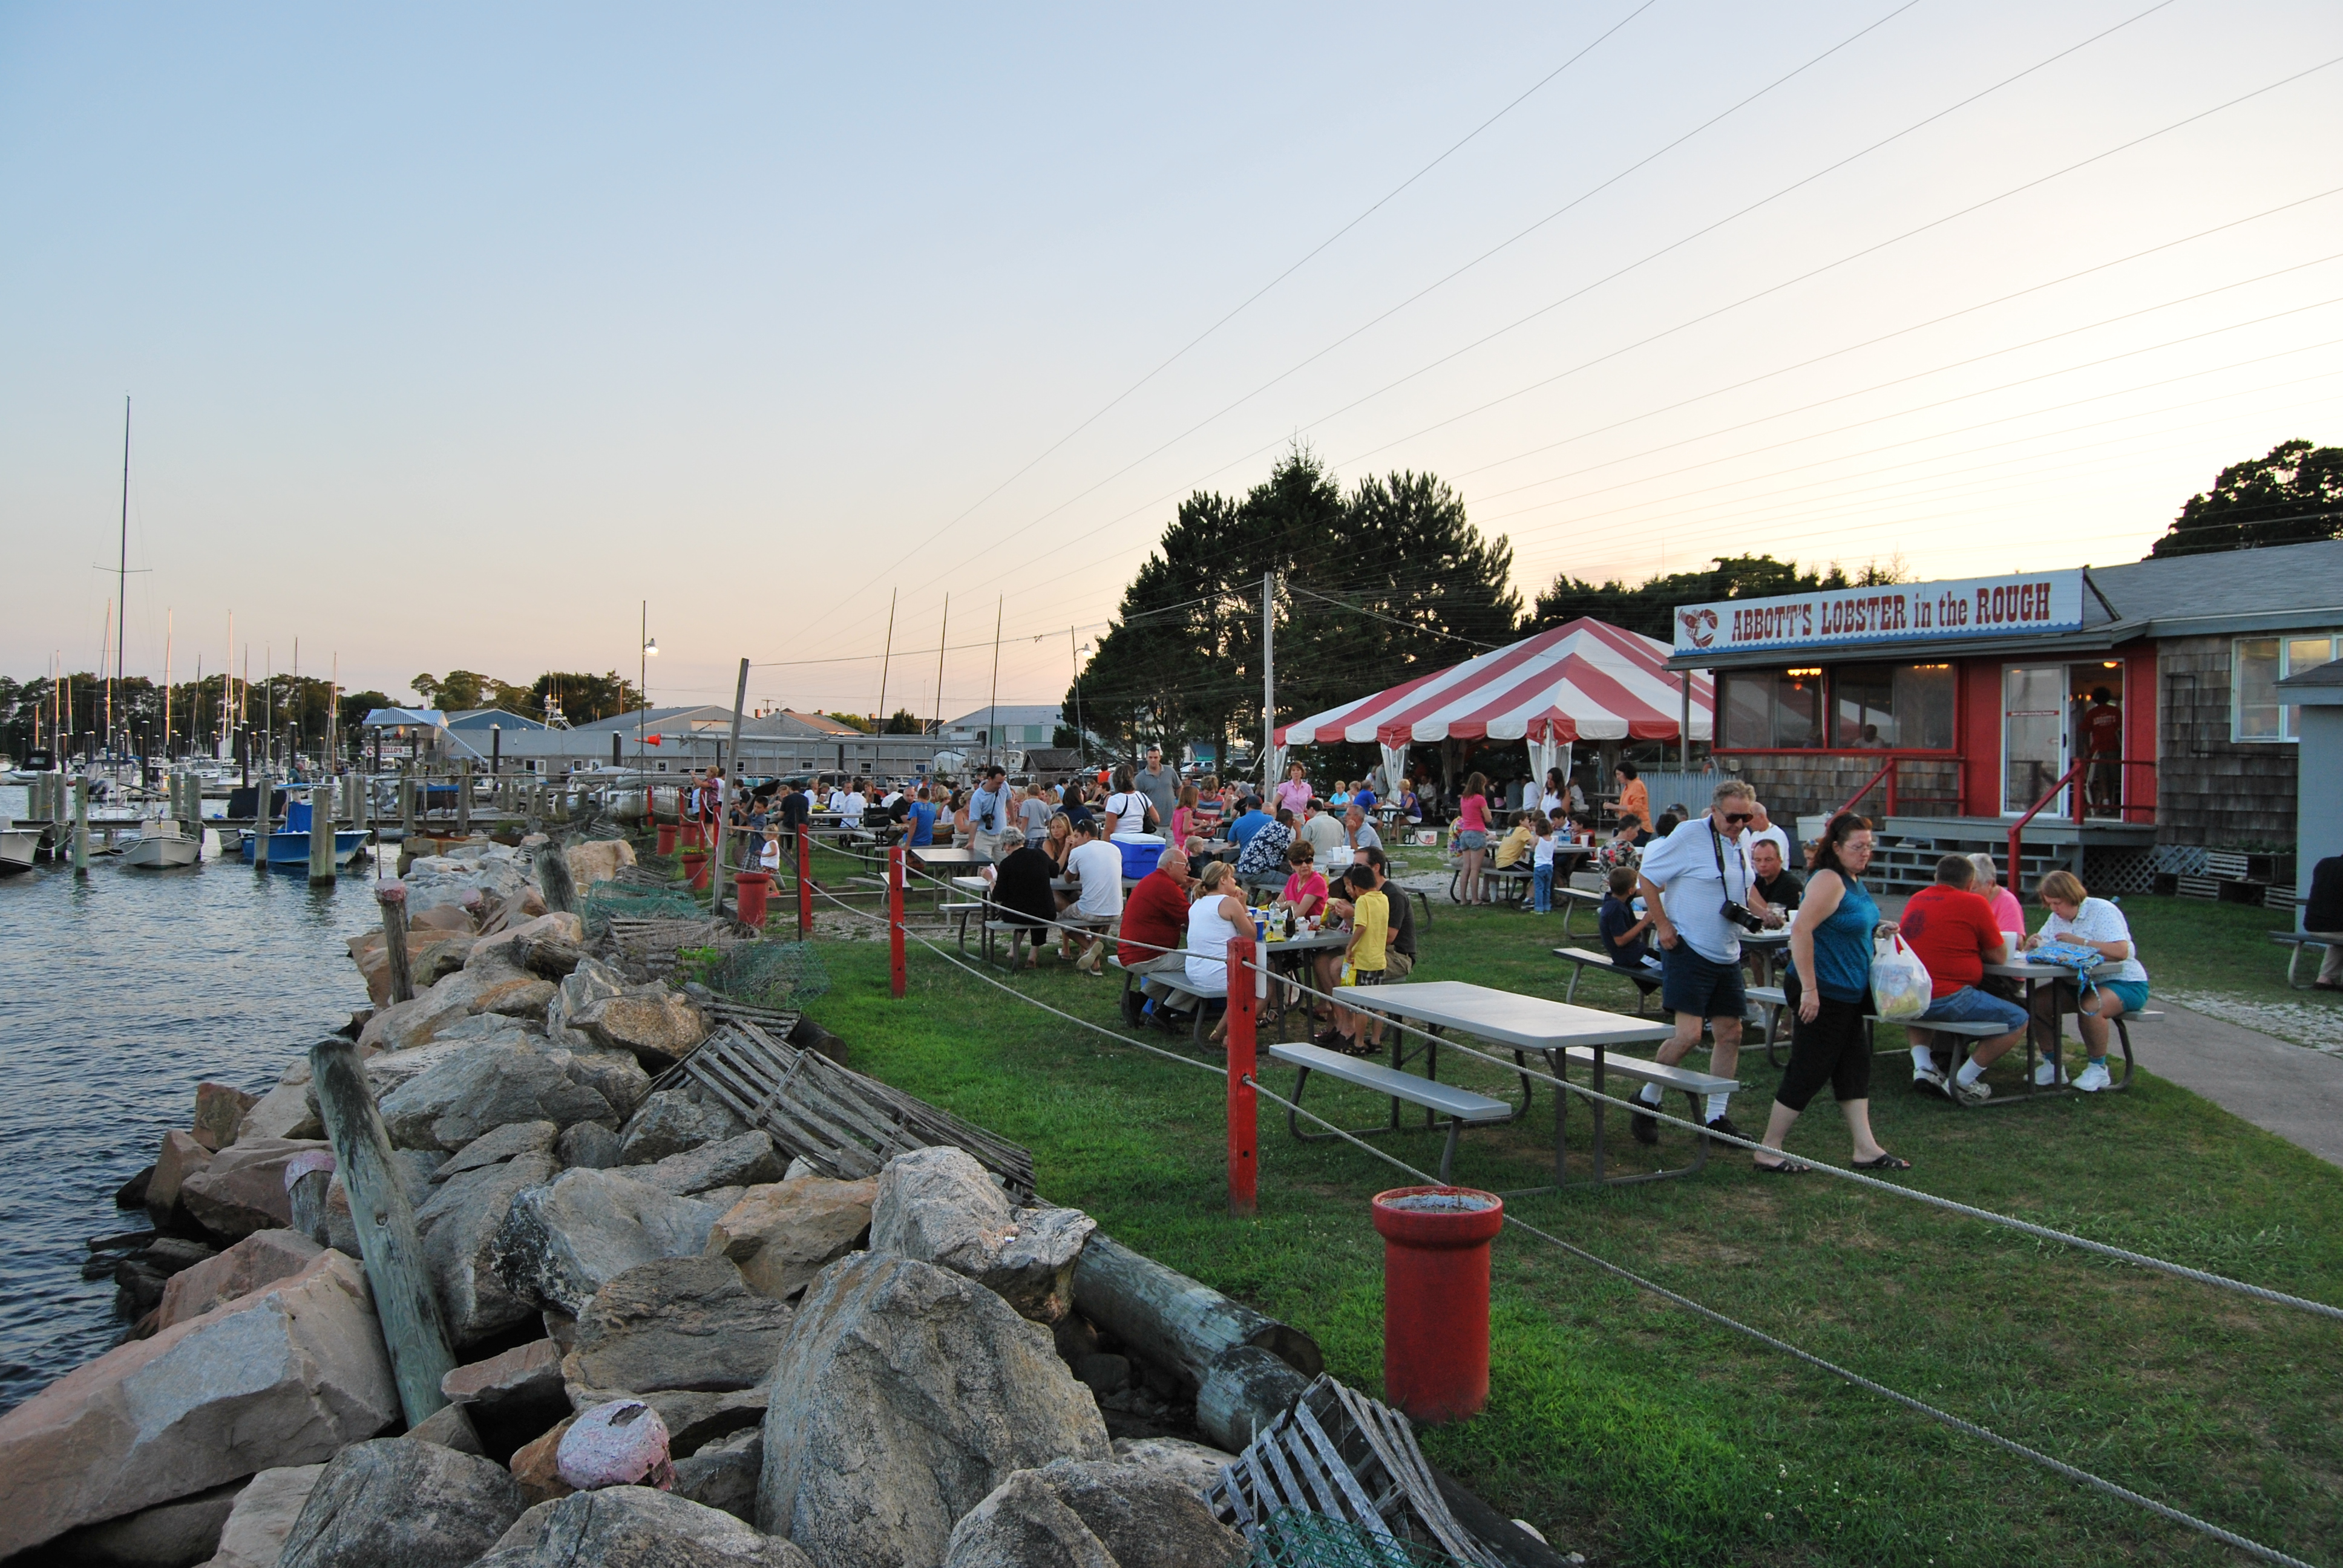 File:Abbott's Lobster In the Rough, Groton, CT.JPG - Wikimedia Commons